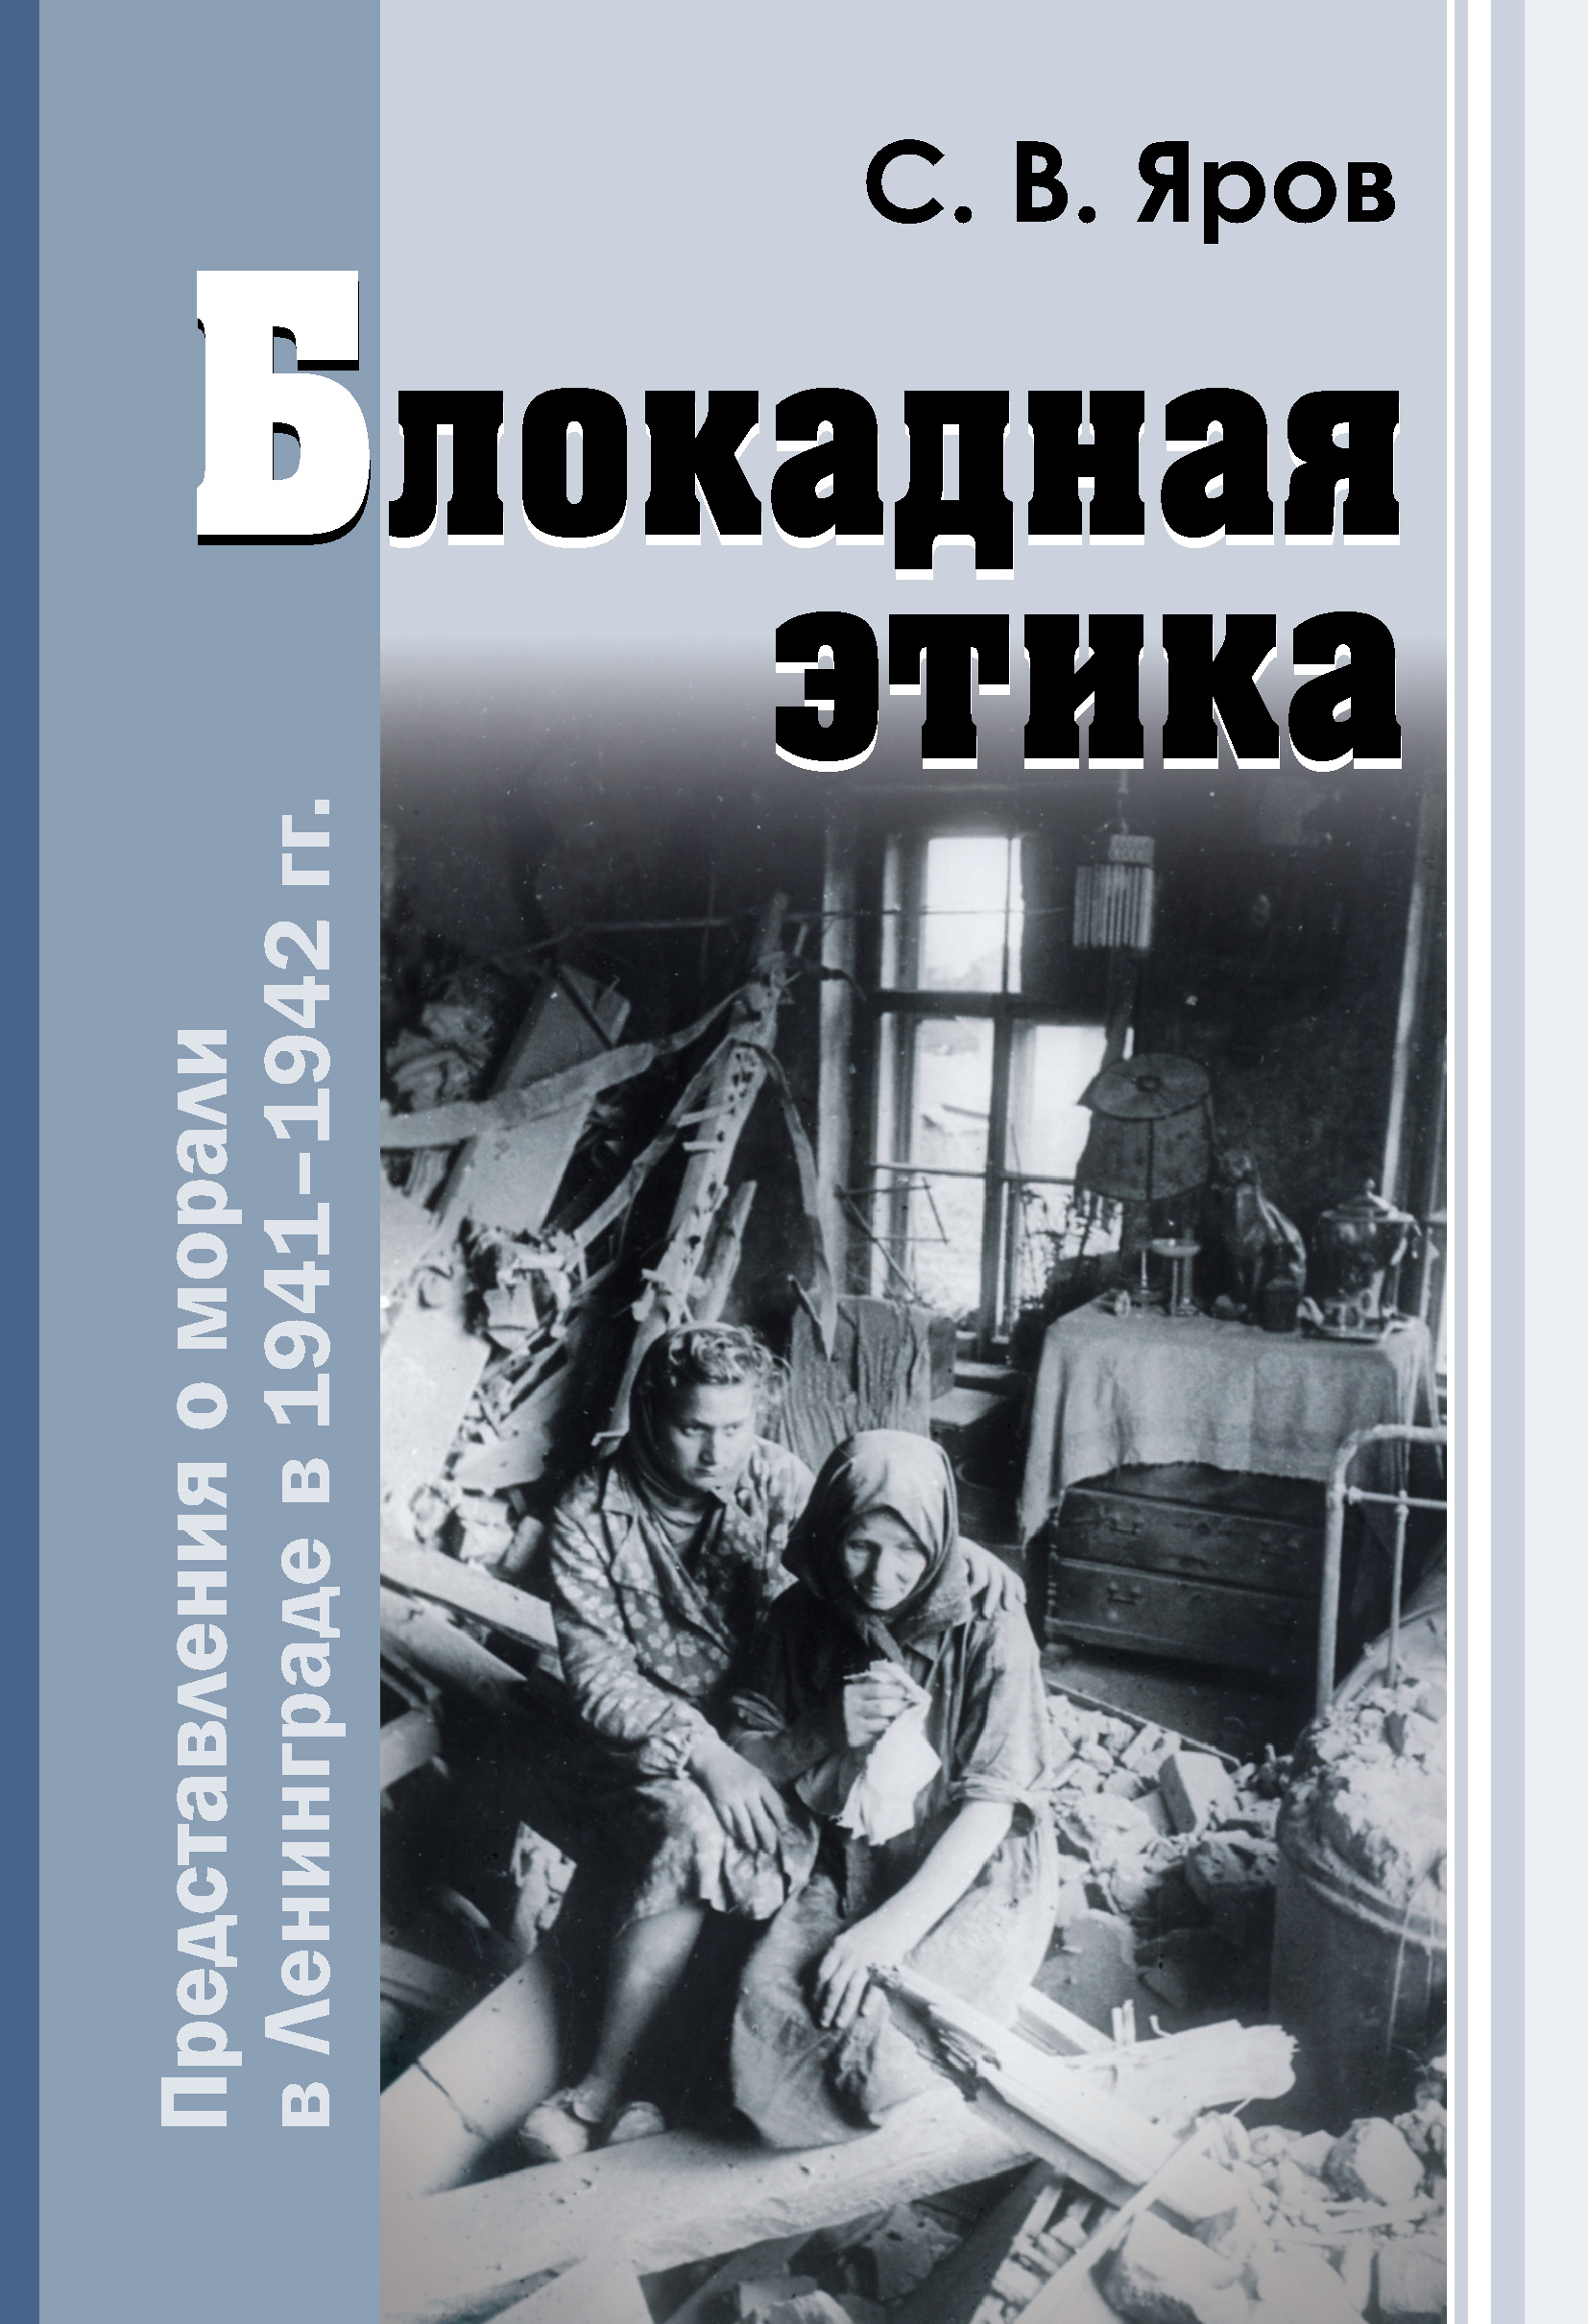 Сергей Яров Блокадная этика. Представления о морали в Ленинграде в 1941–1942 гг. джон колтрейн маккой тайнер стив дэвис элвин джонс john coltrane my favorite things lp